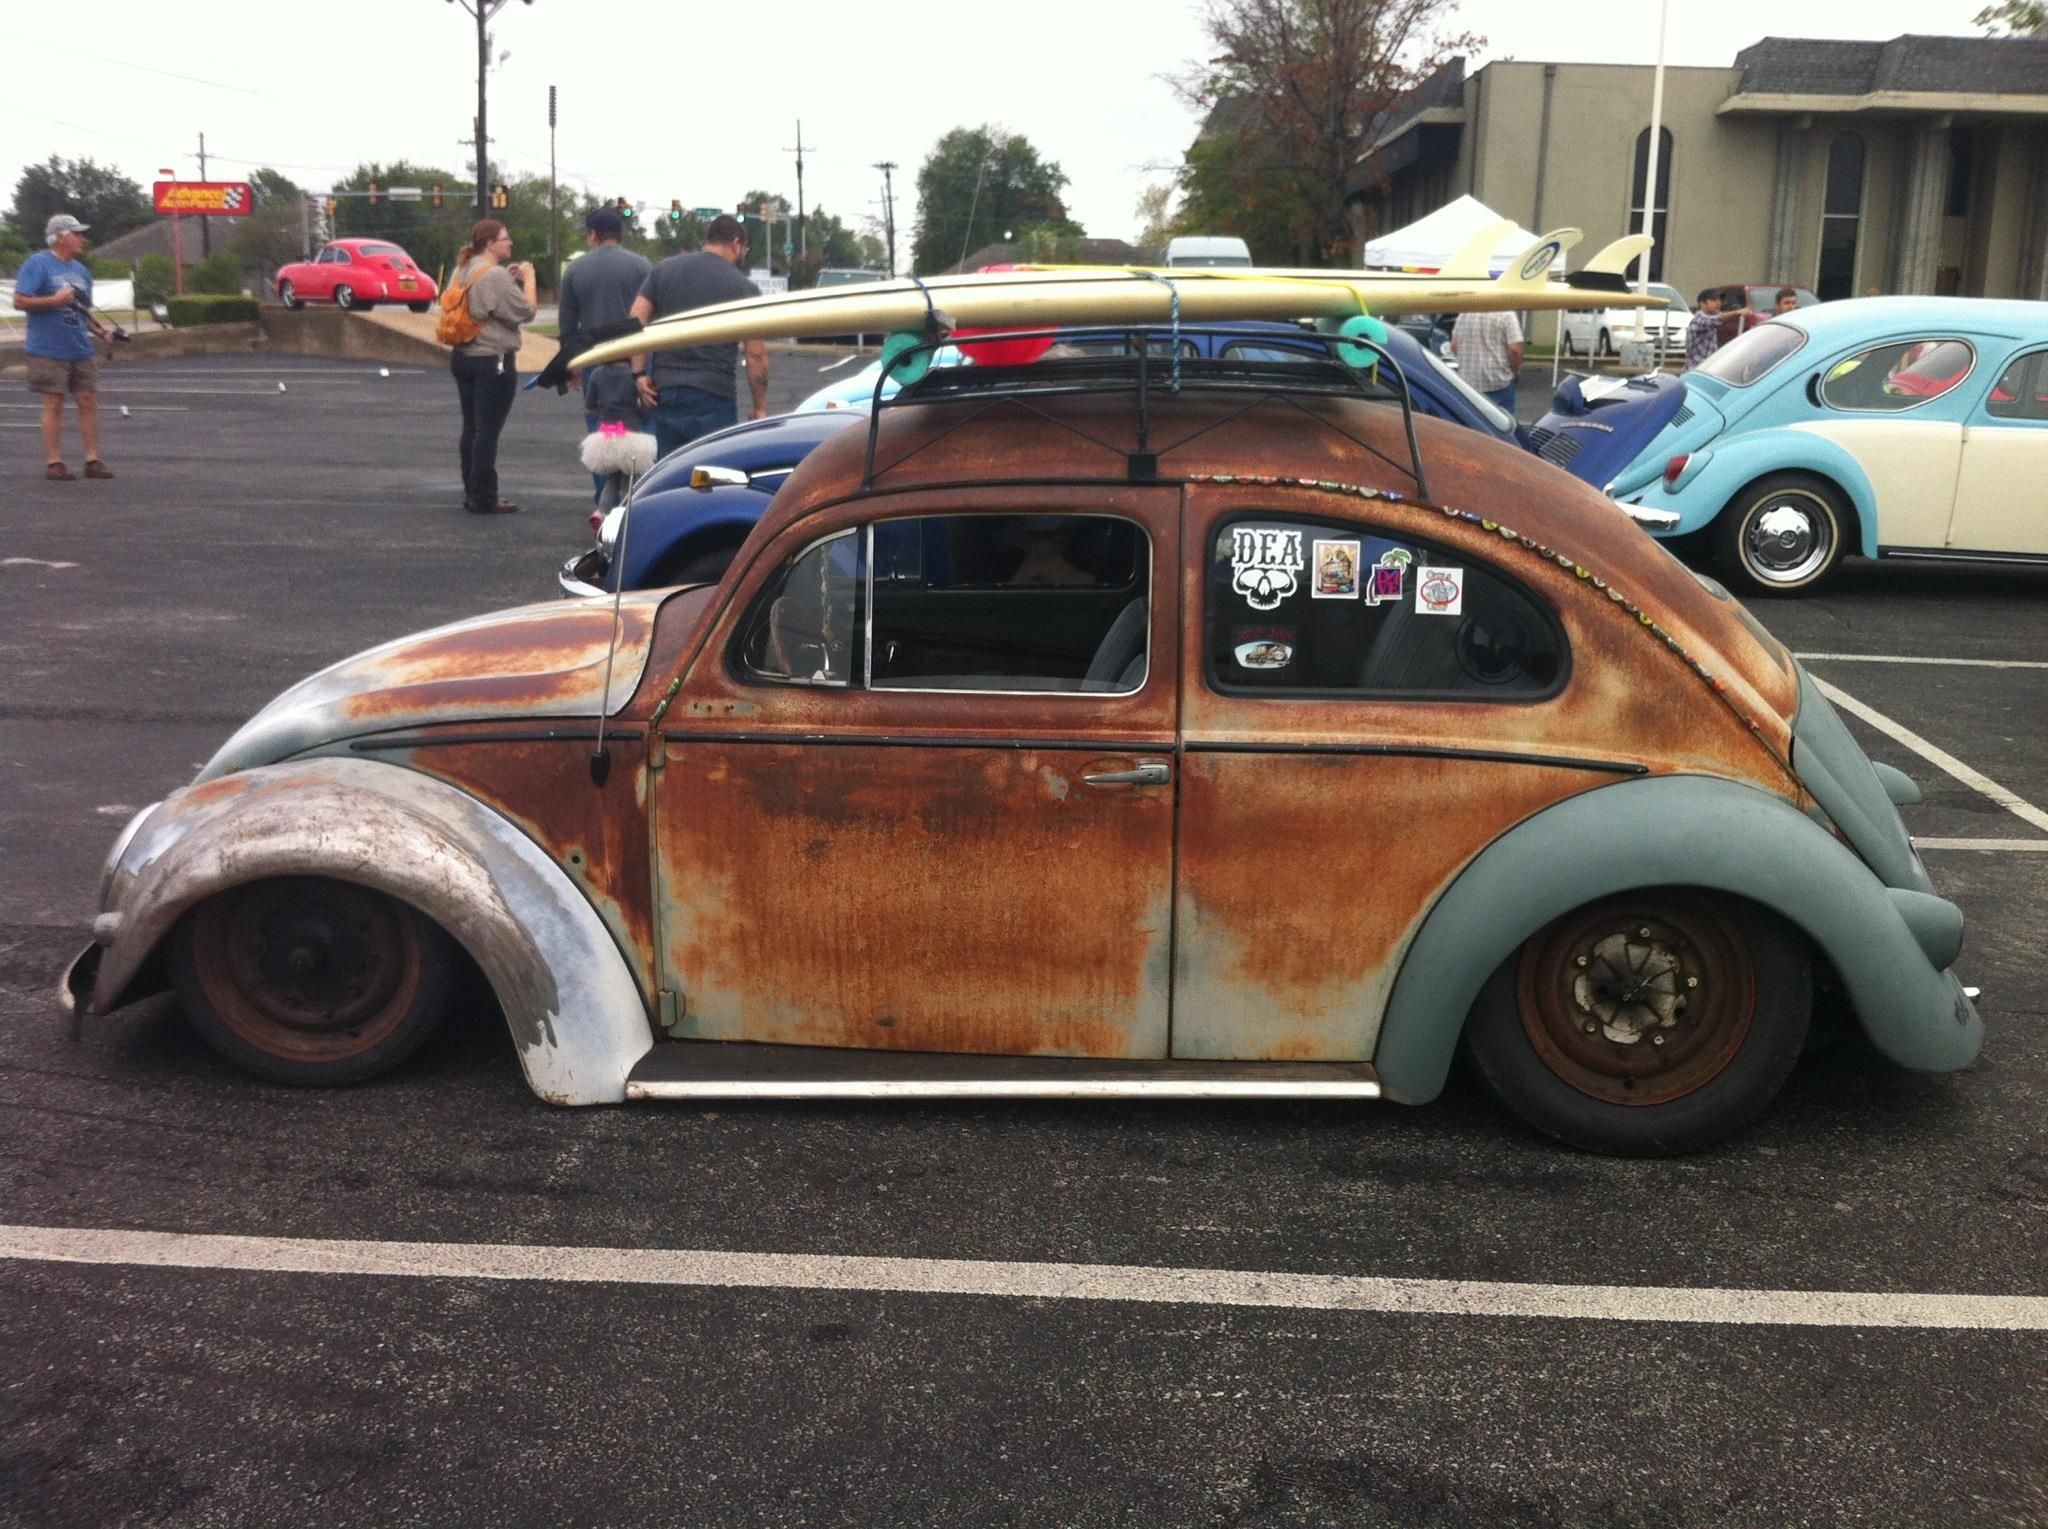 Slammed beetle on air suspension at Tulsa VW Show | Awesome Cars | Pinterest | Vw beetles ...